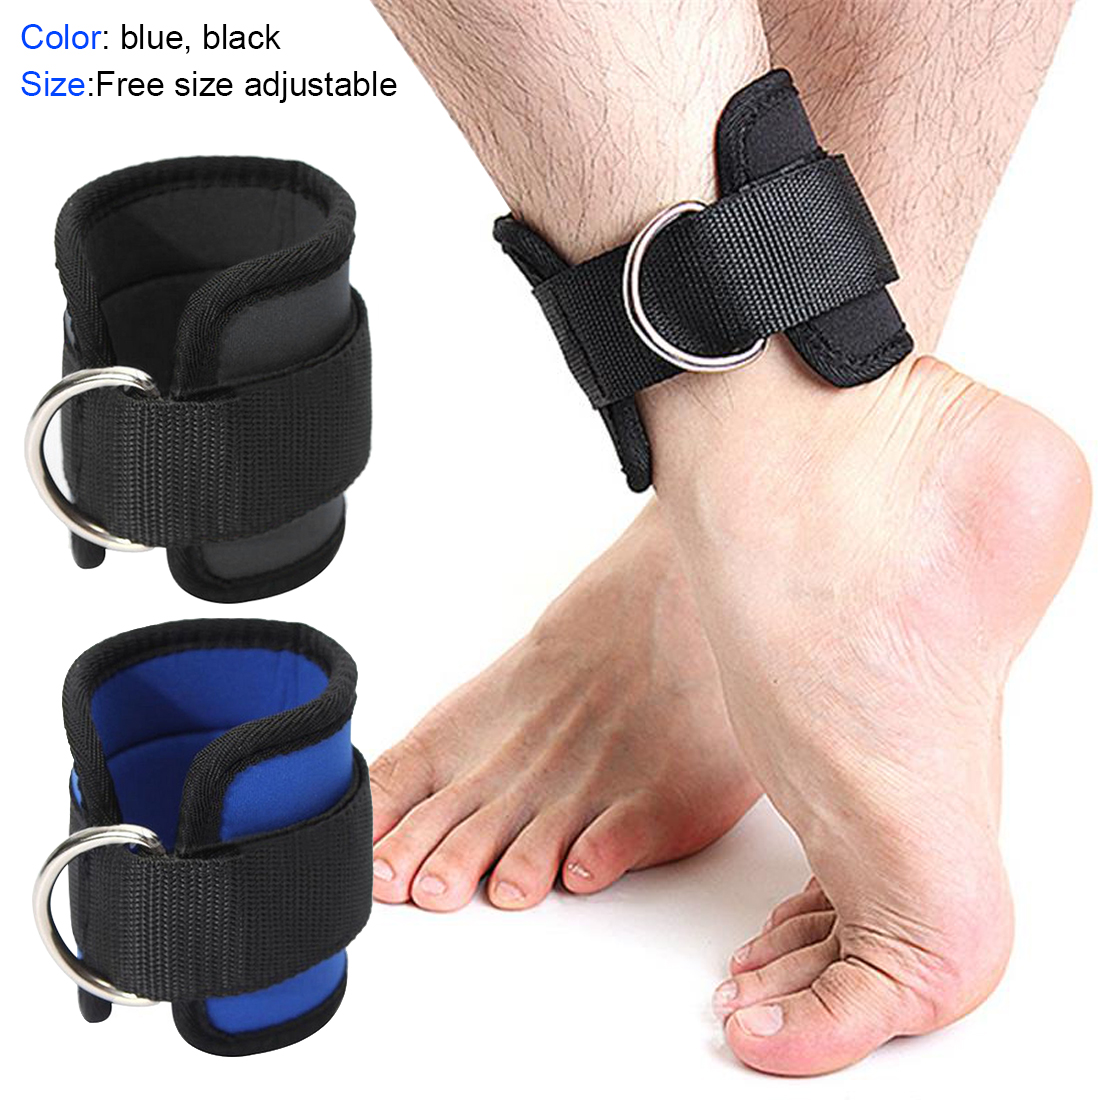 1Pcs Ankle Strap Wrist Support Gym Band Leg Strength Training  Weight Bearing